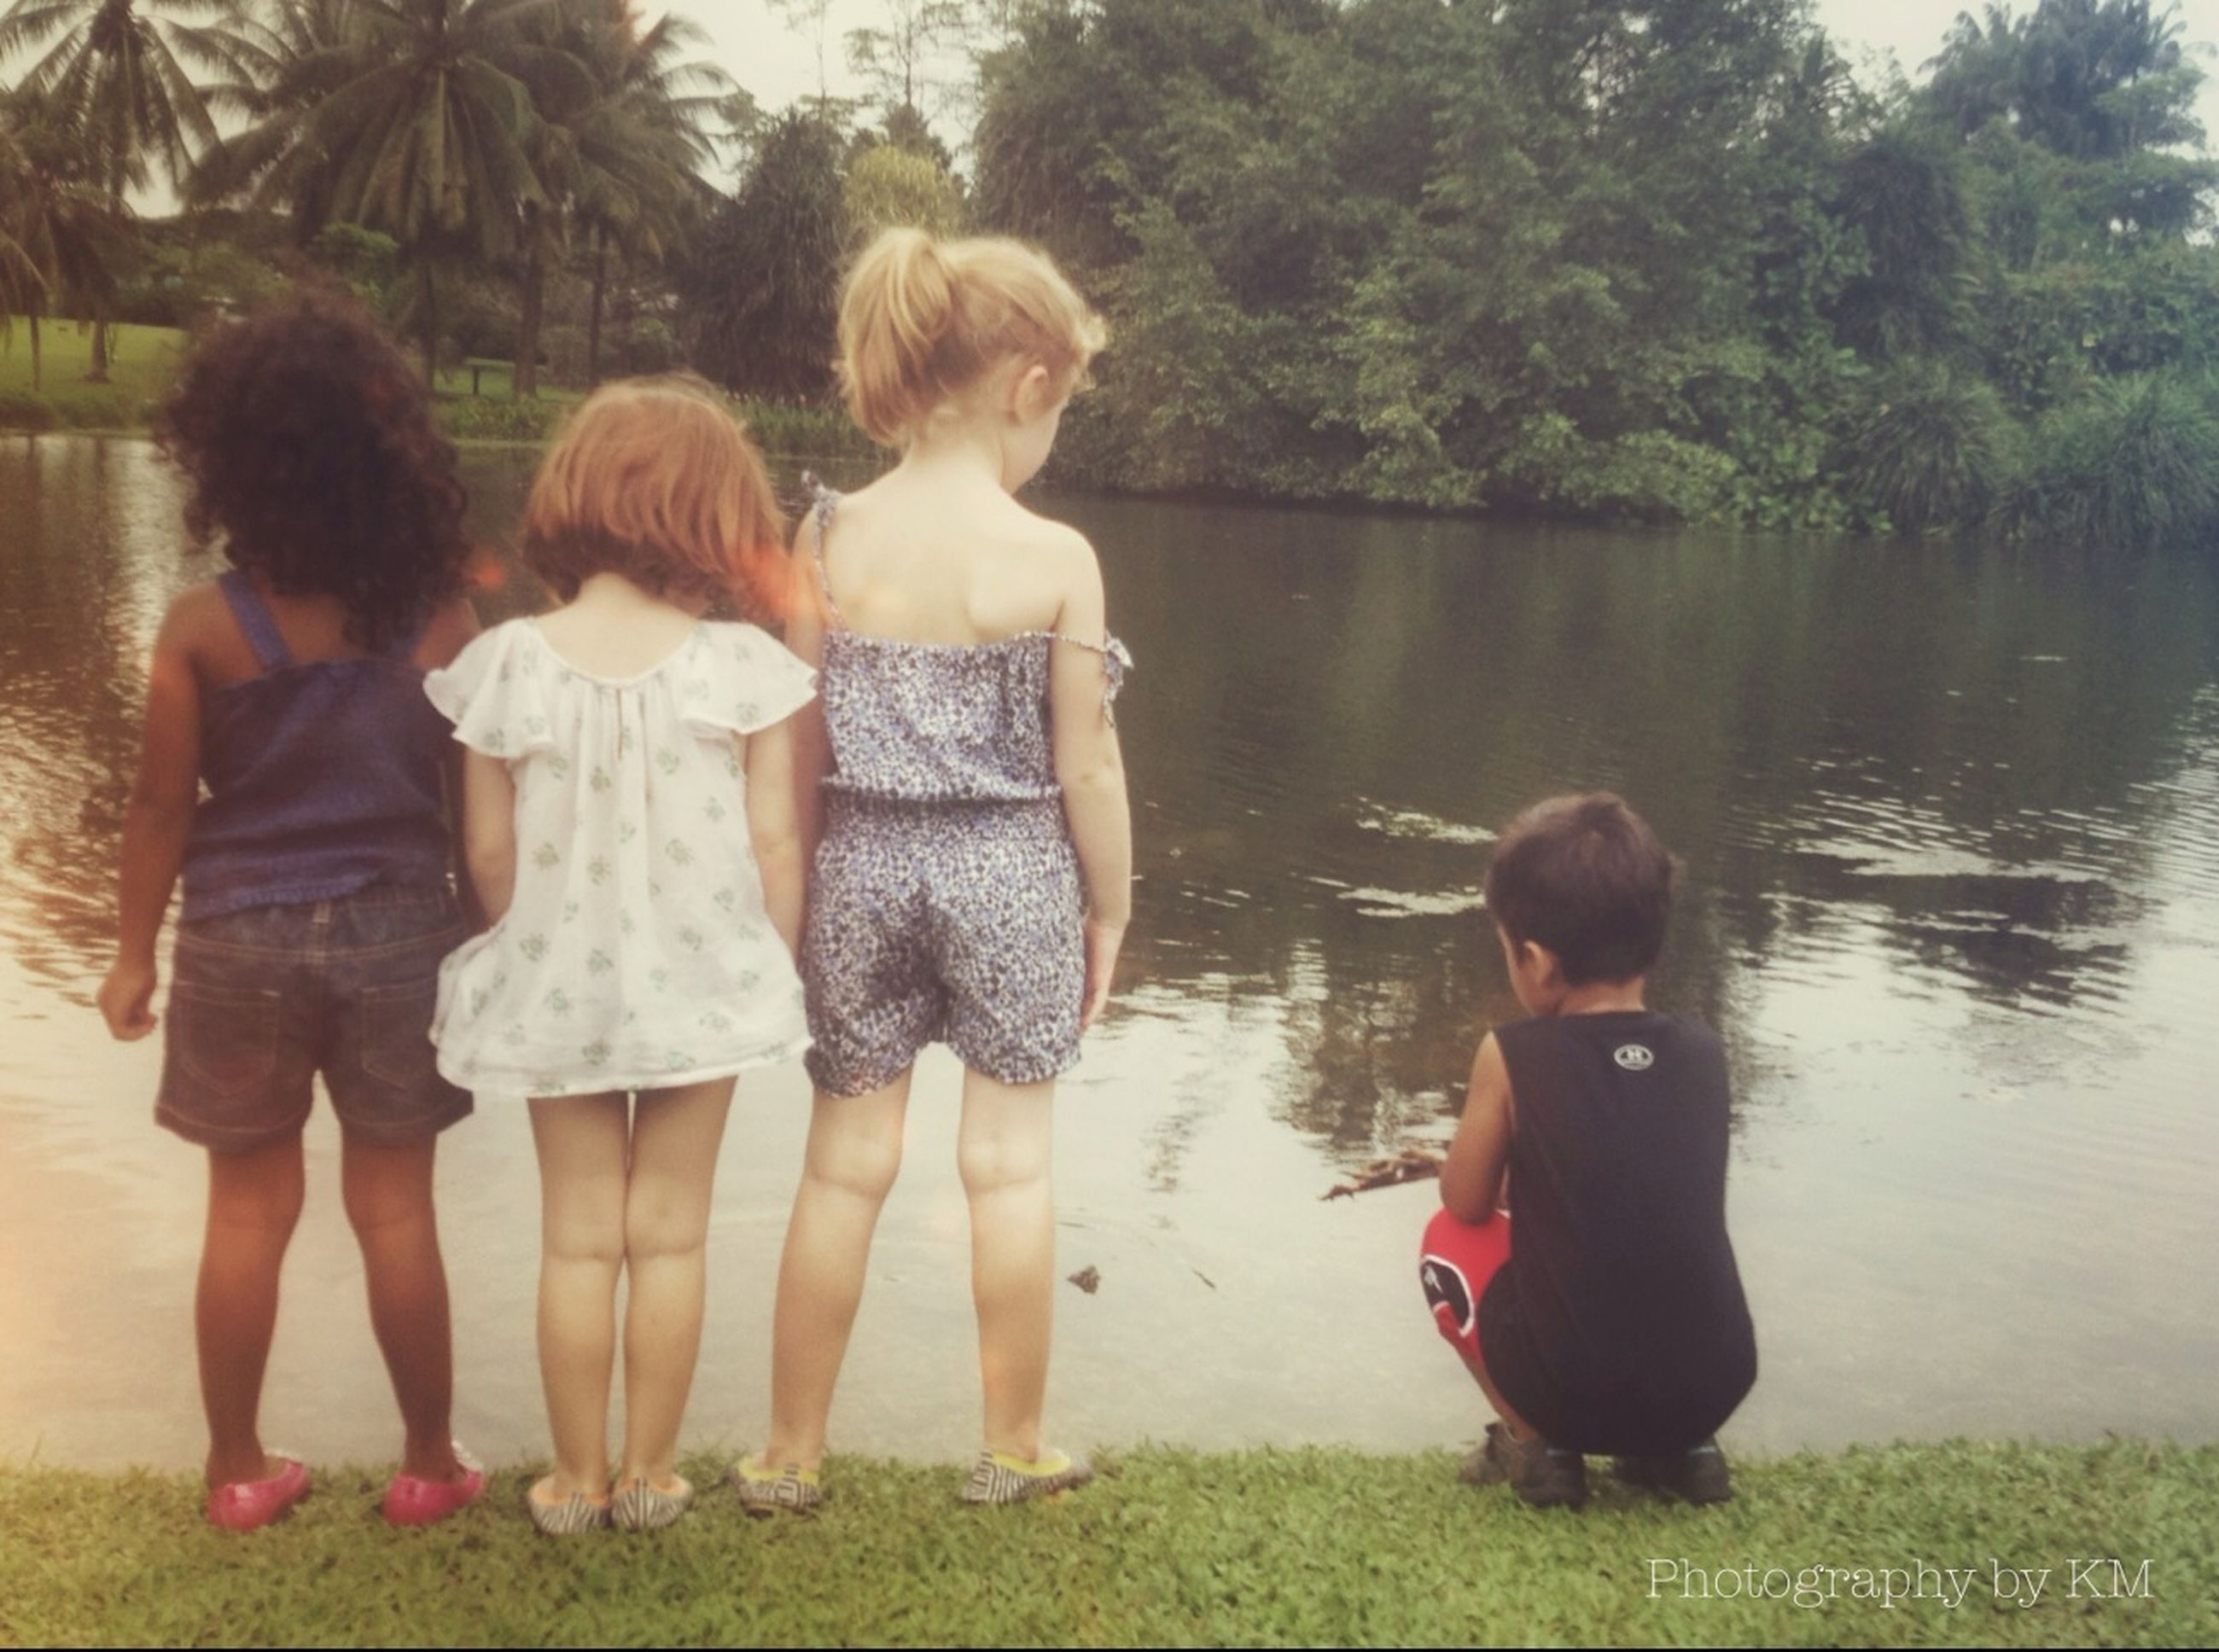 childhood, togetherness, elementary age, water, casual clothing, lifestyles, bonding, leisure activity, girls, full length, love, person, boys, family, innocence, cute, brother, sibling